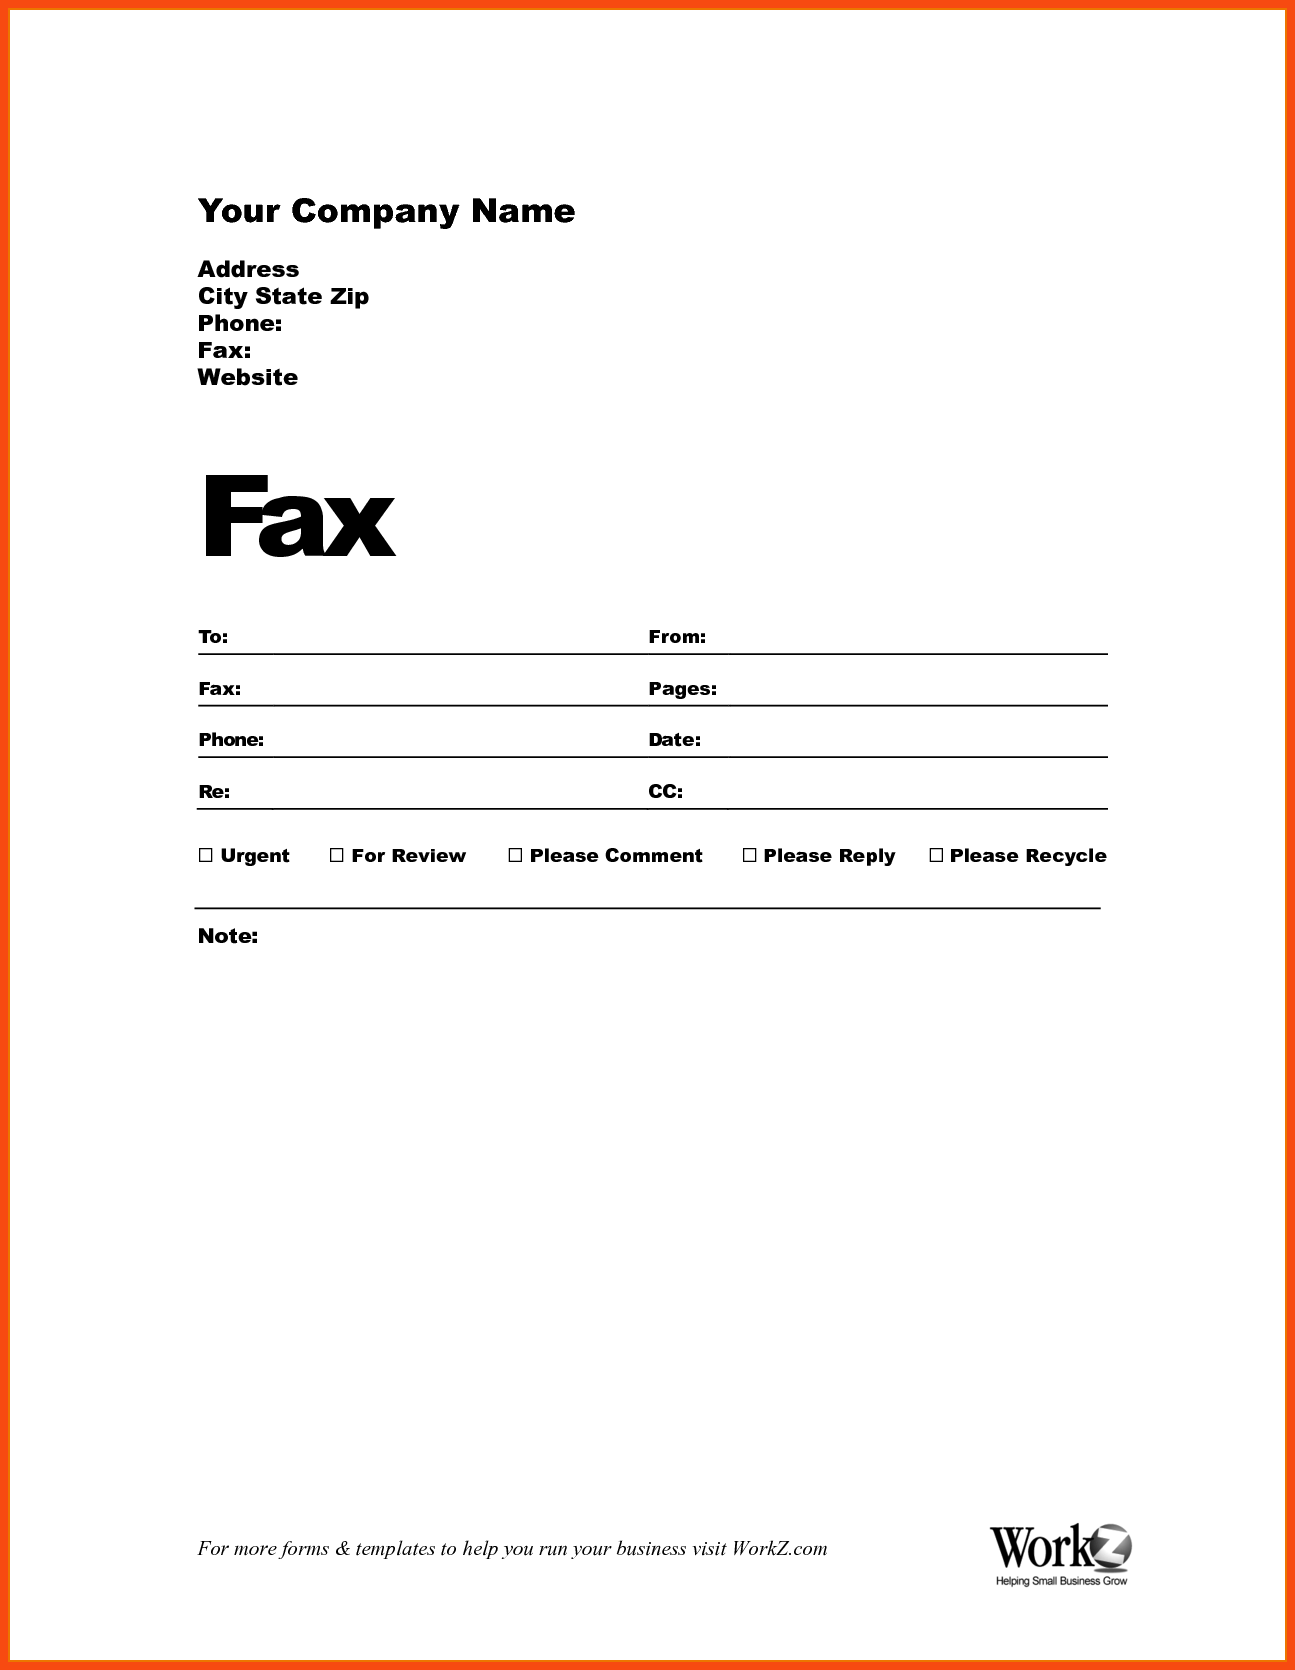 how to fill out a fax cover sheet | free fax cover sheet template